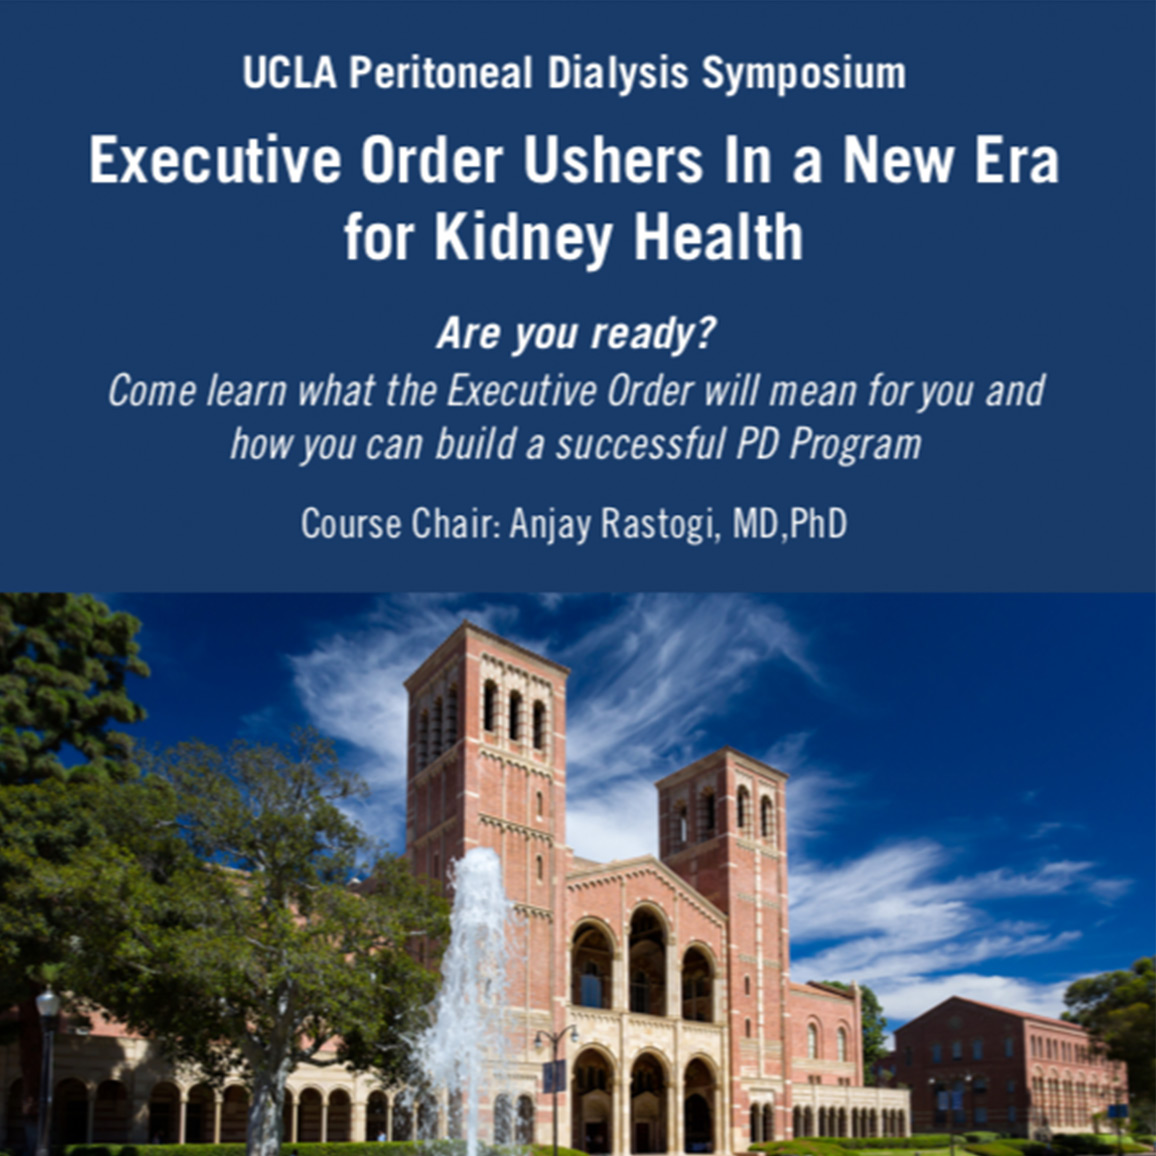 UCLA DGSOM Continuing Medical Education | Continuing Medical